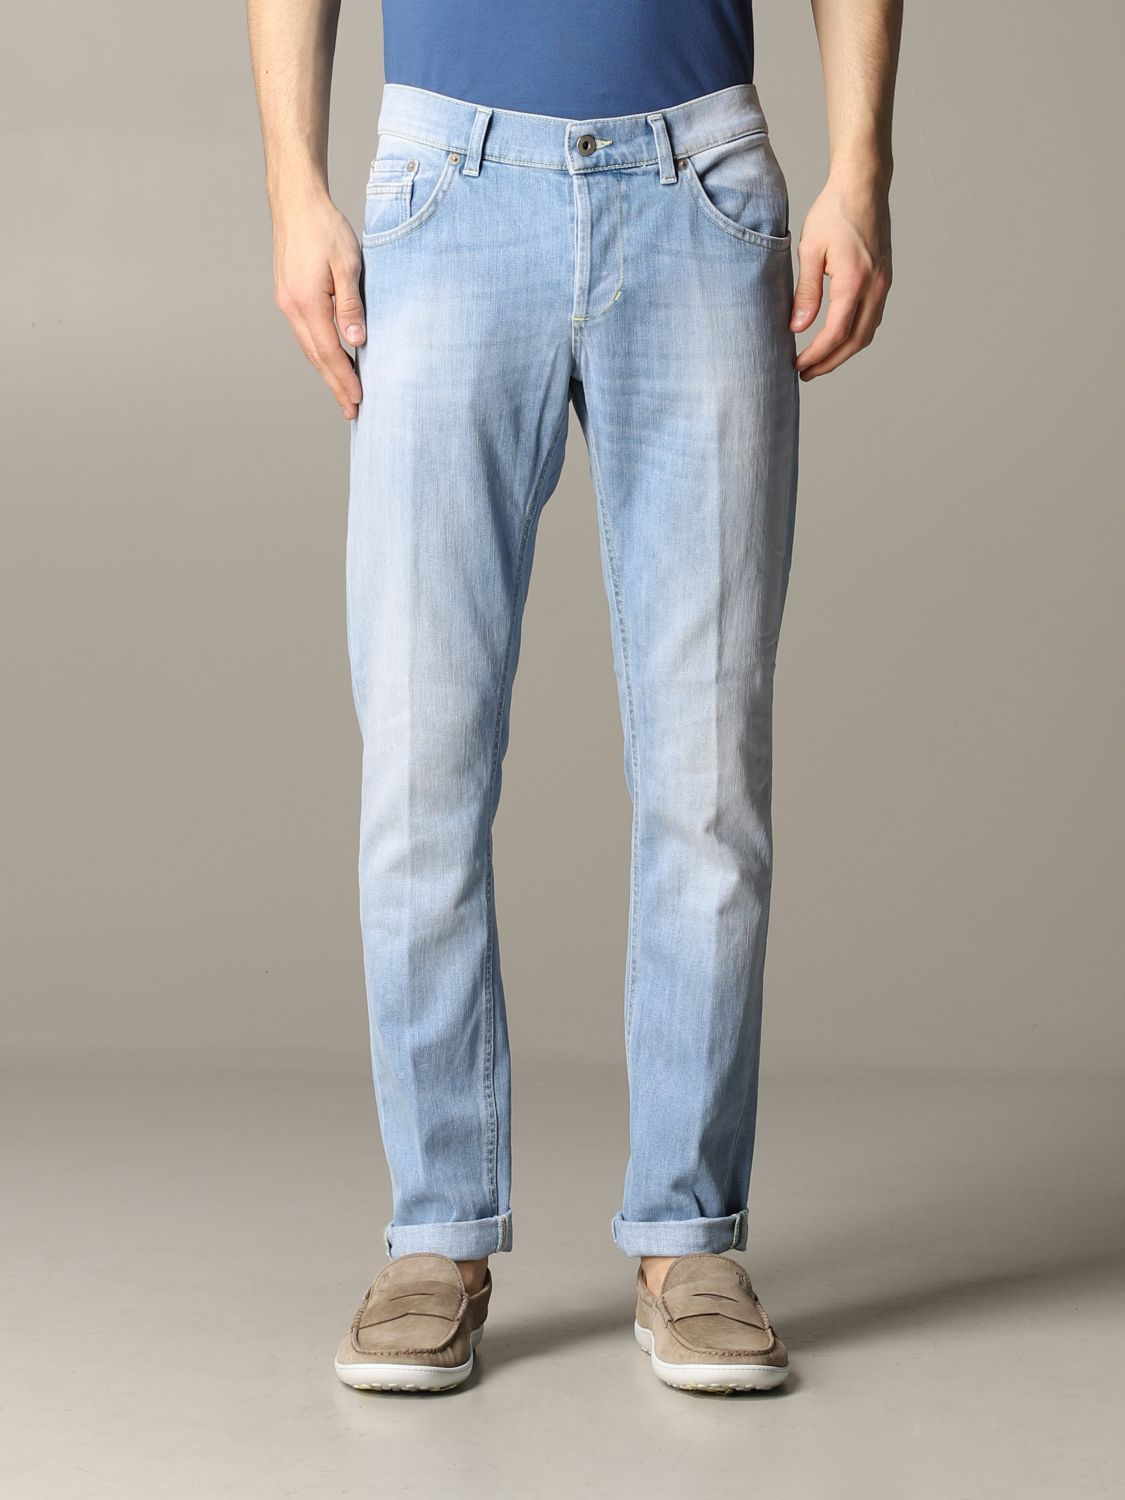 Jeans Dondup: Ritchie Dondup Slim Fit Jeans stone washed 1